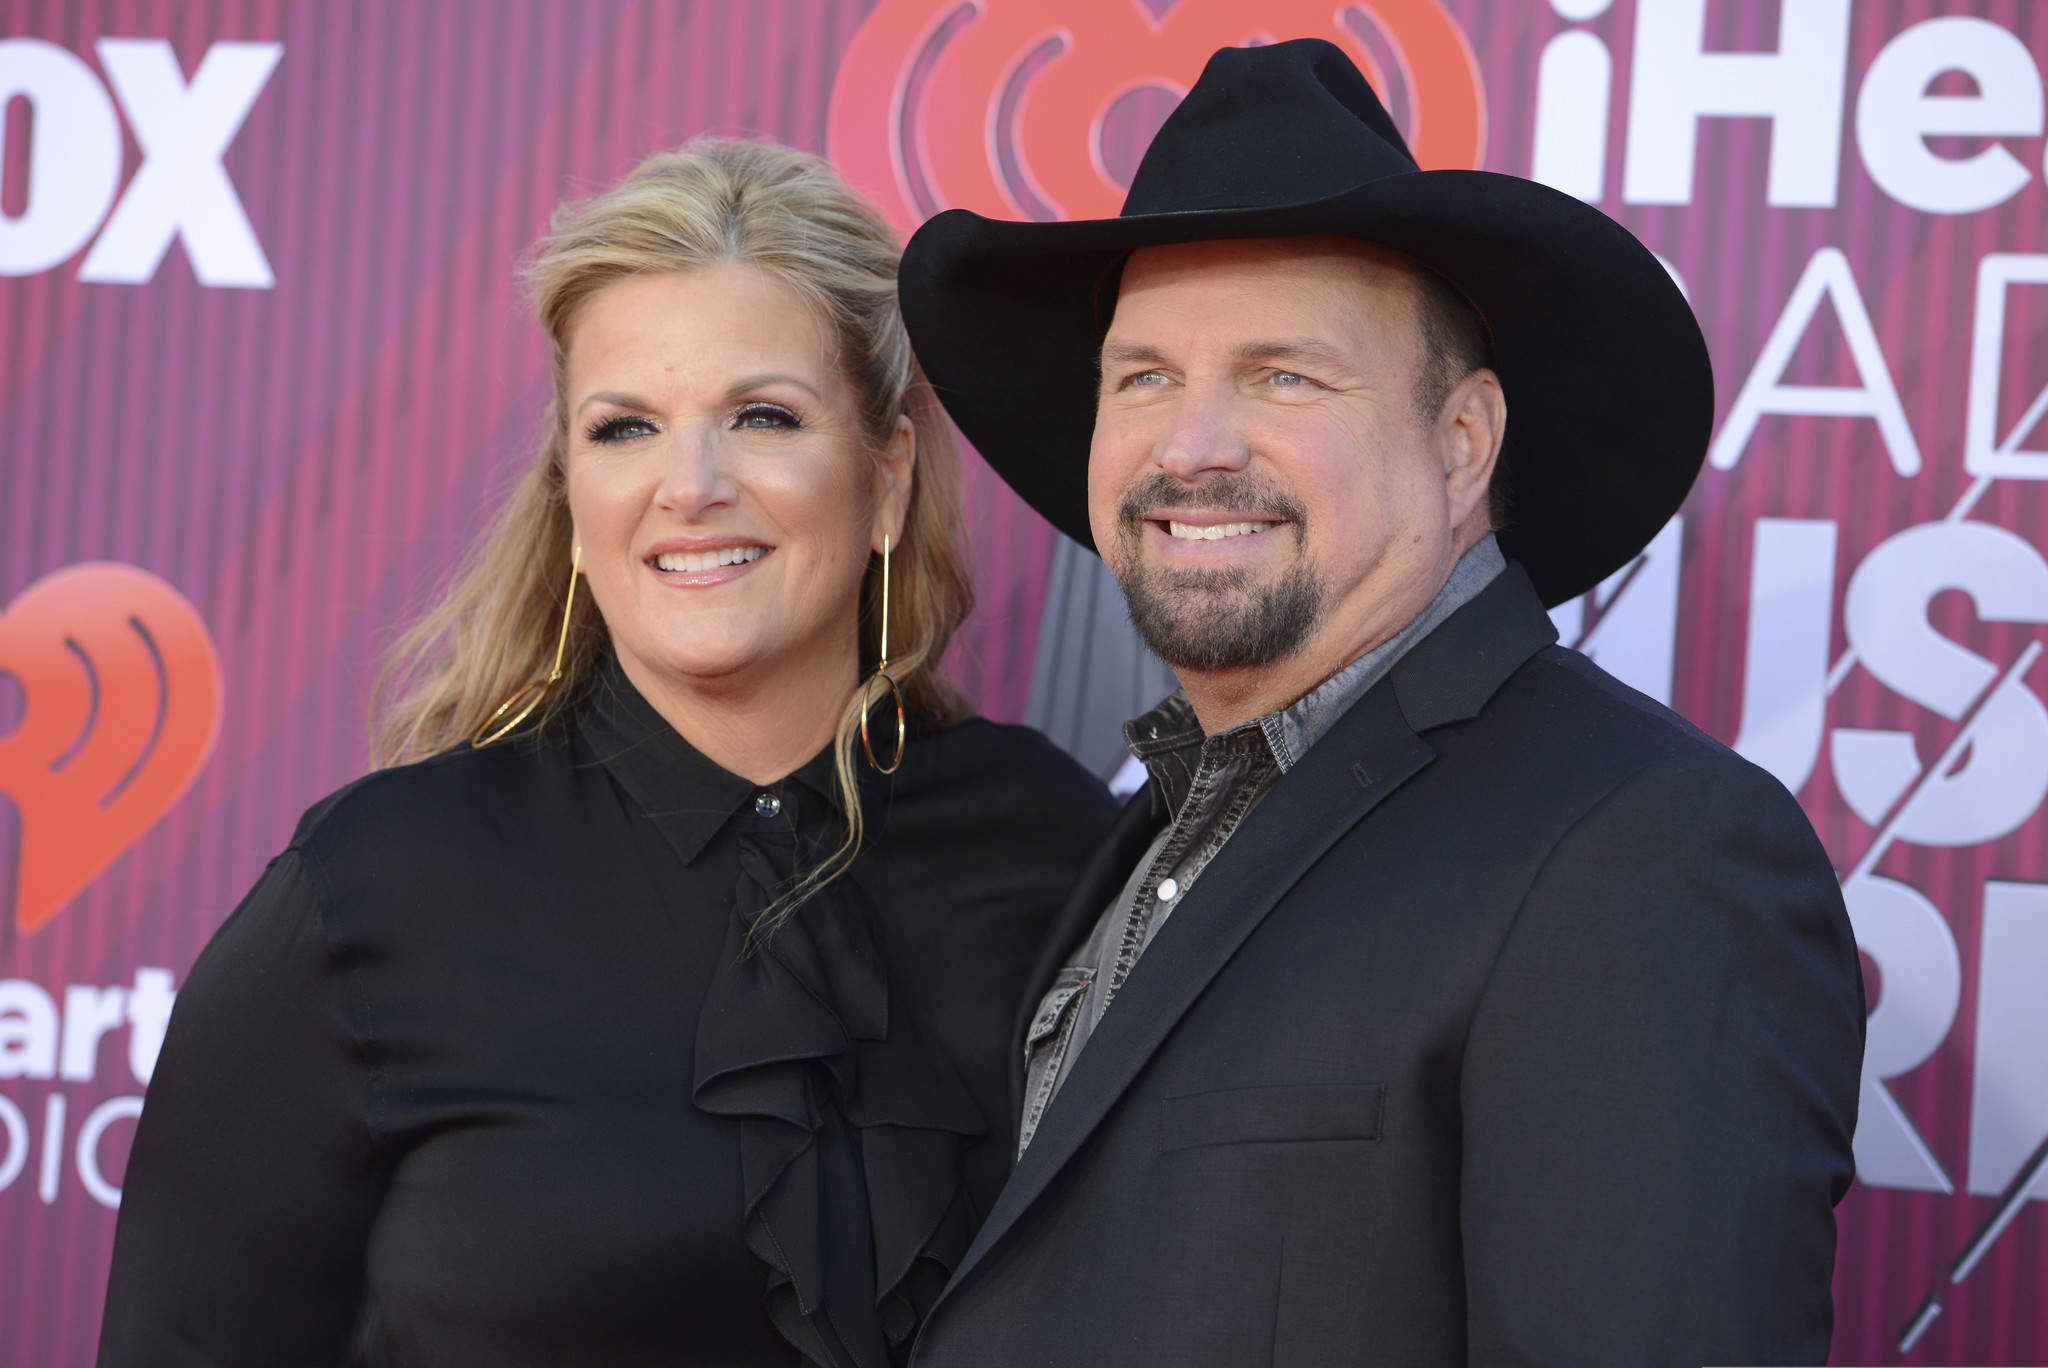 Facebook Live crashes repeatedly during Garth Brooks and Trisha Yearwood's performance